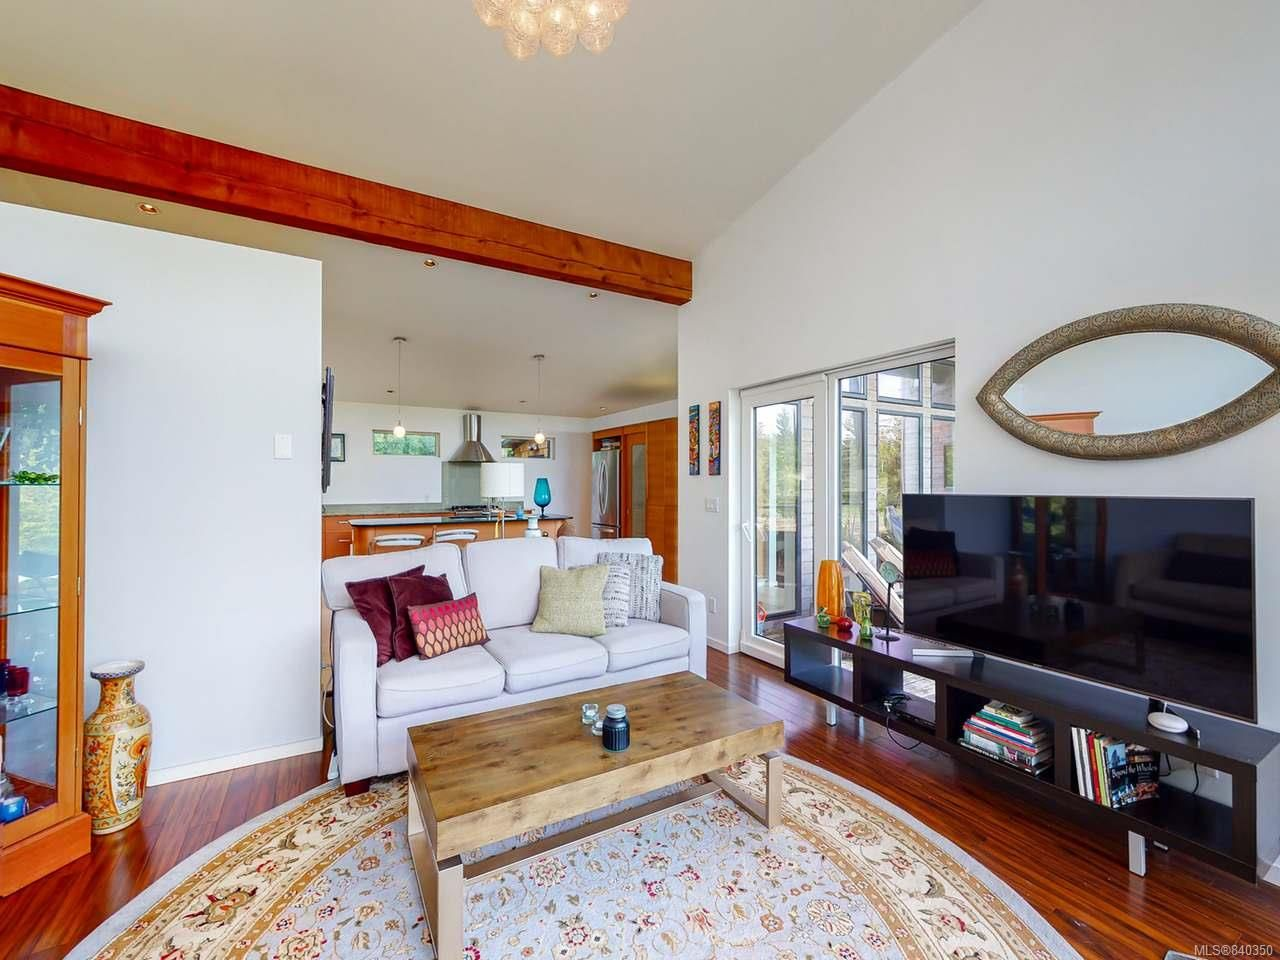 Photo 7: Photos: 1068 Helen Rd in UCLUELET: PA Ucluelet House for sale (Port Alberni)  : MLS®# 840350